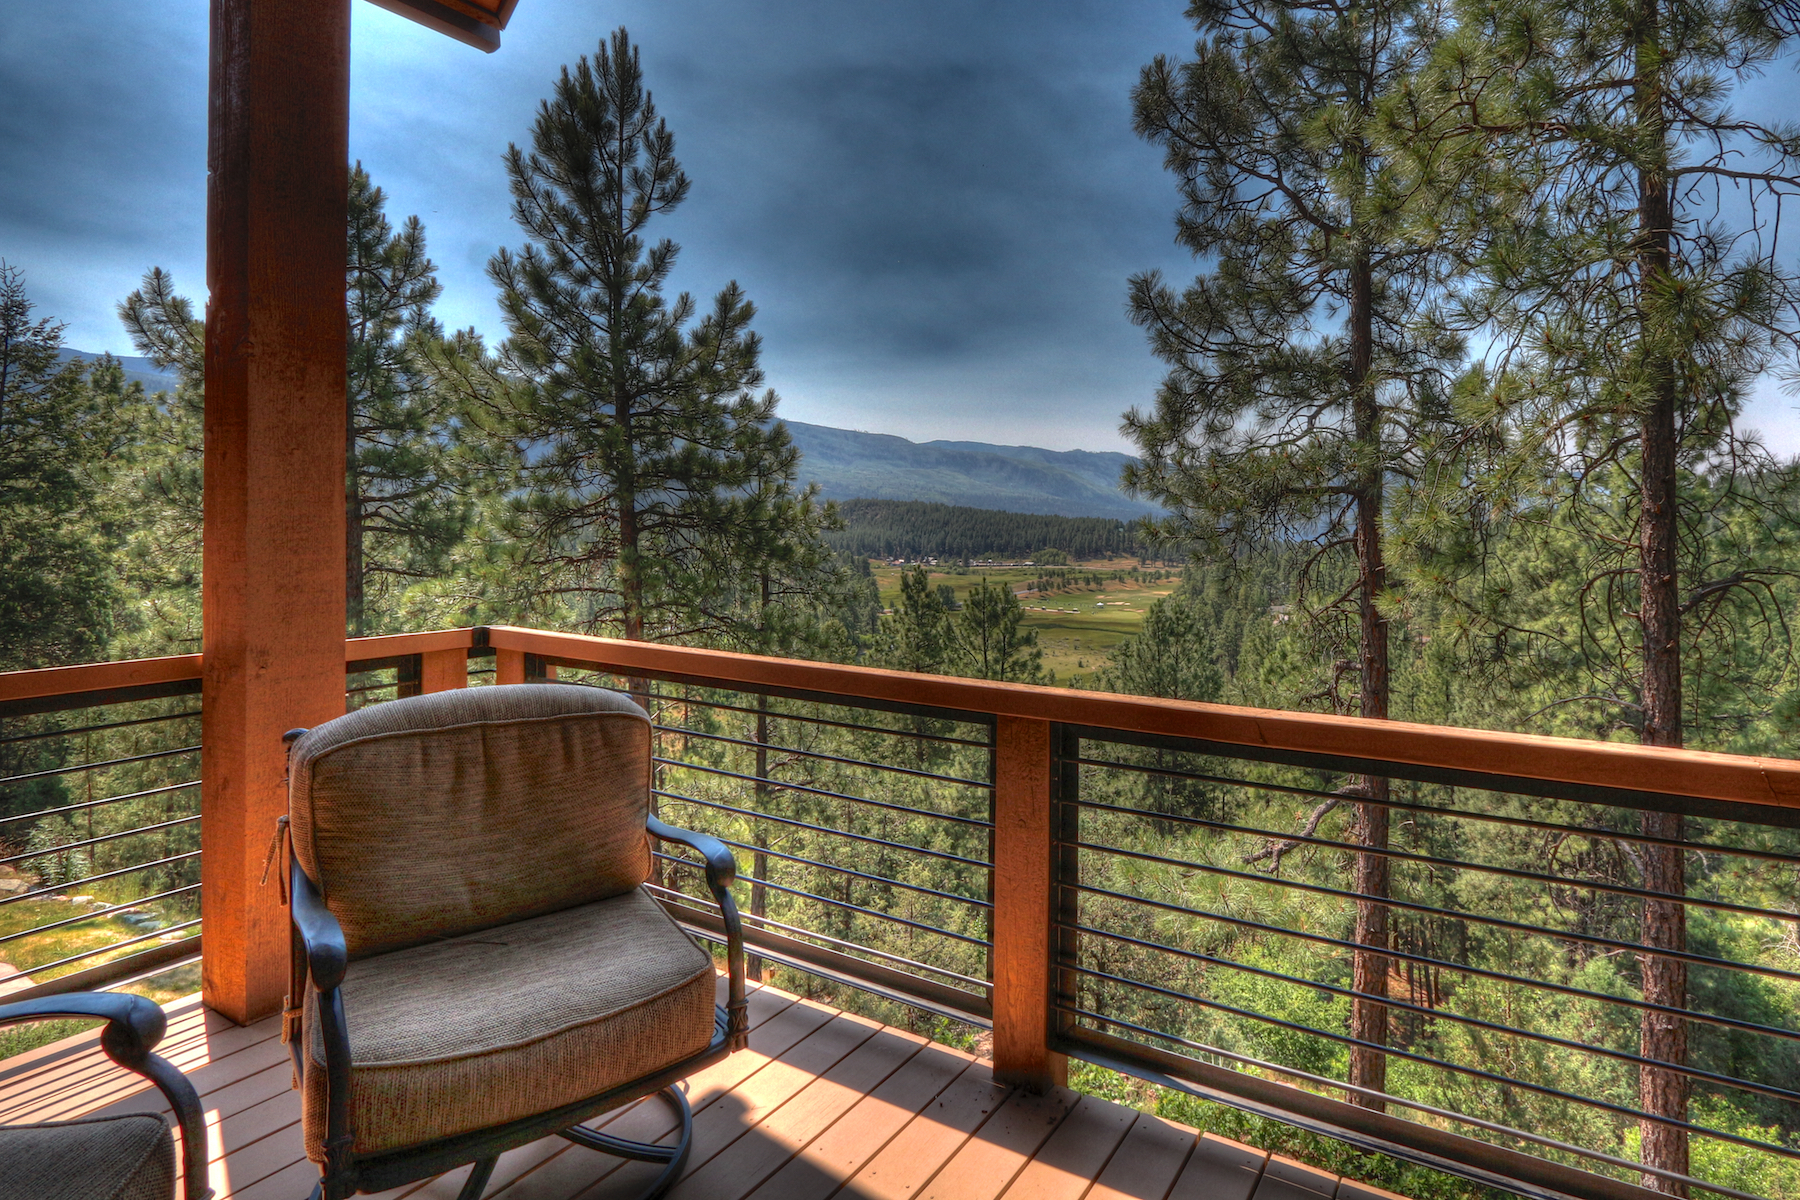 Additional photo for property listing at 590 Glacier Club Drive #7 590 Glacier Club Dr. #7 Durango, Colorado 81301 United States